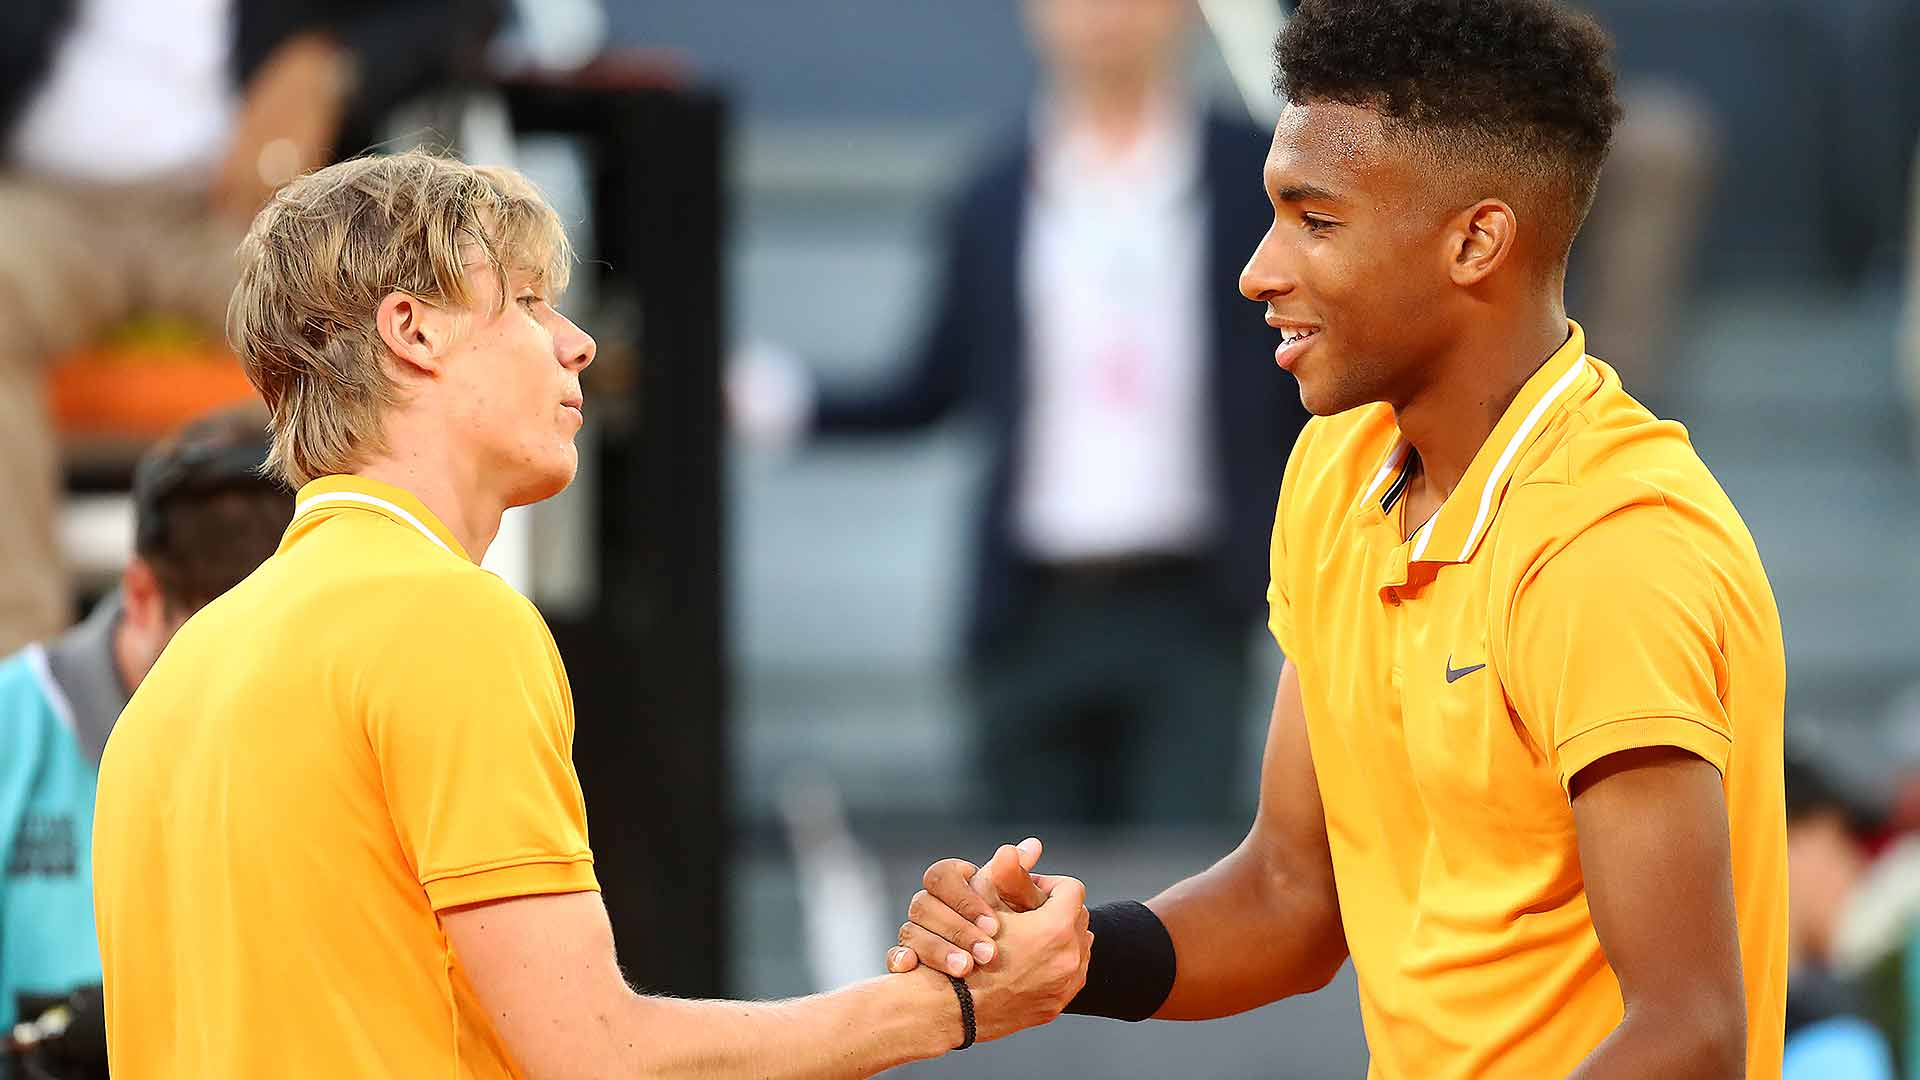 Denis Shapovalov and Felix Auger-Aliassime will meet at the US Open for the third time in their FedEx ATP Head2Head rivalry (1-1).